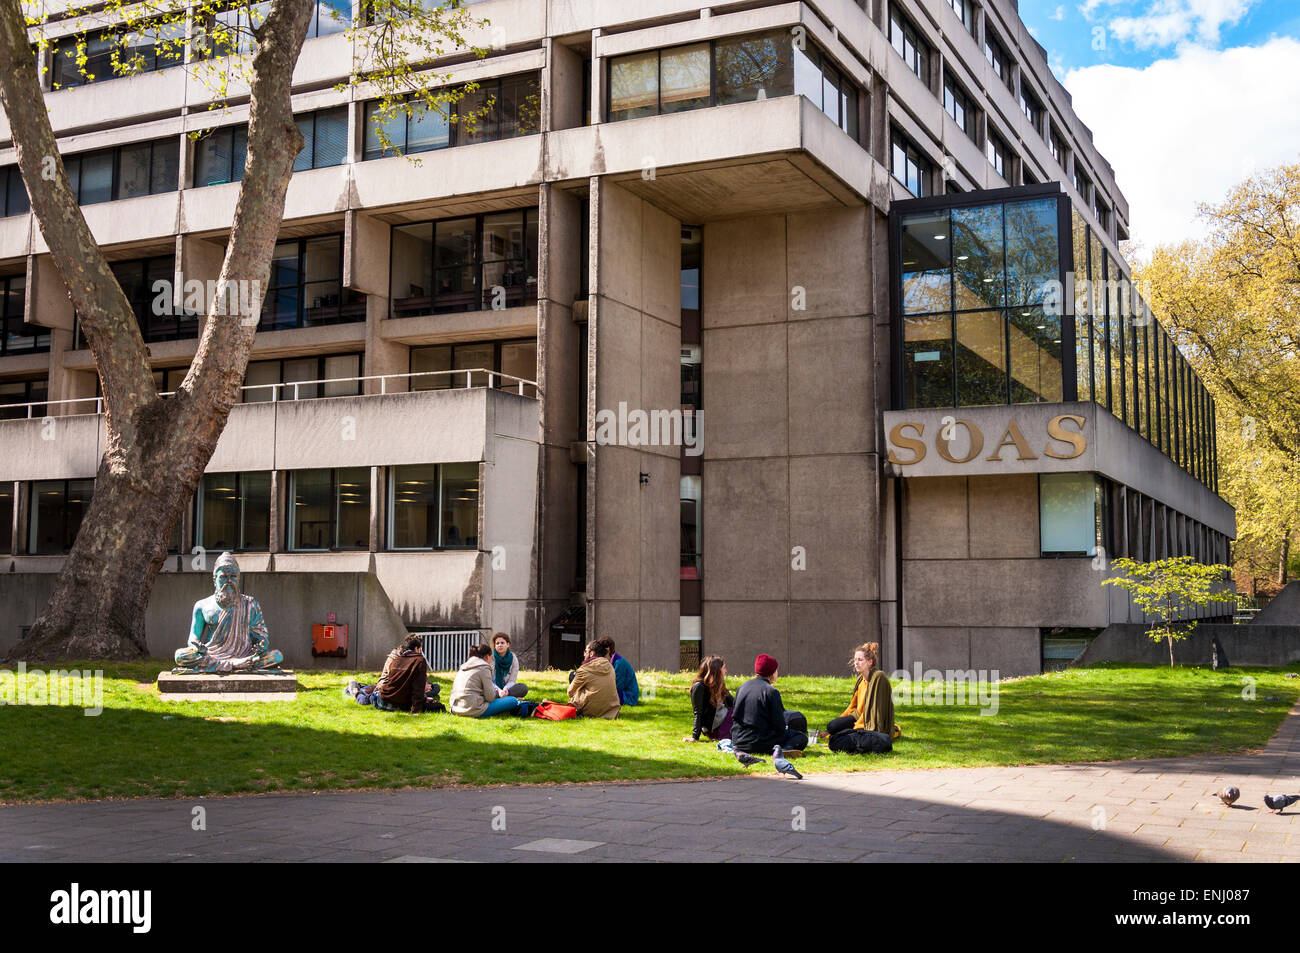 soas university of london essay You can then access your university email account and other key resources:  and a coursework essay of 4,000-5,000 words  at soas, university of london.